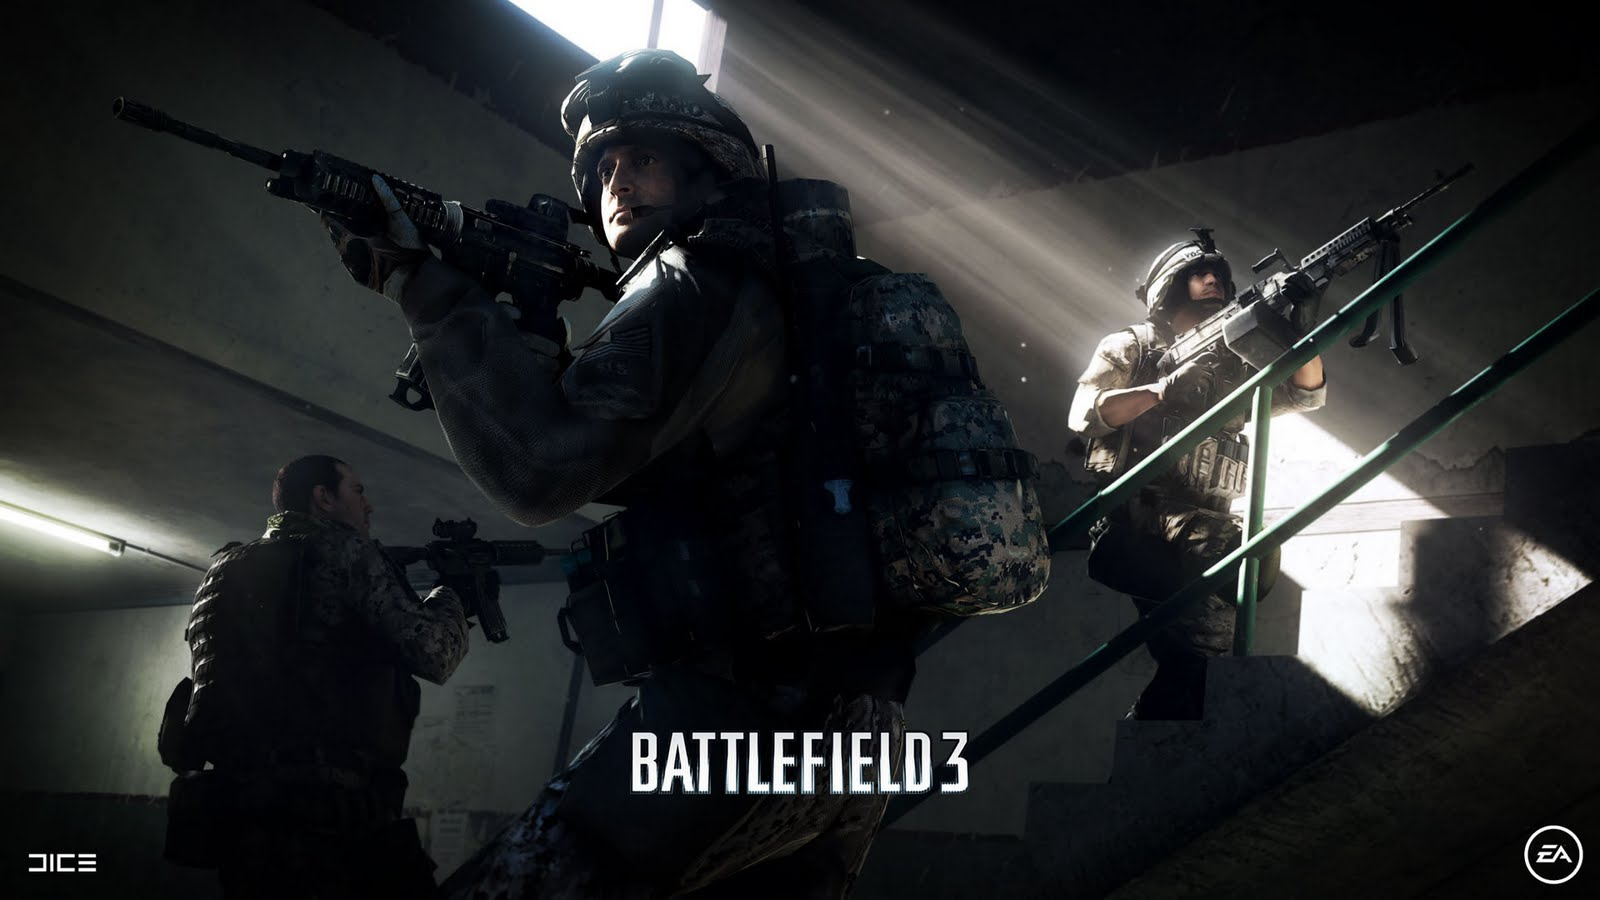 Battlefield 3, 1600x900 RESOLUTION, Games, trop, soldier, ea games, dice